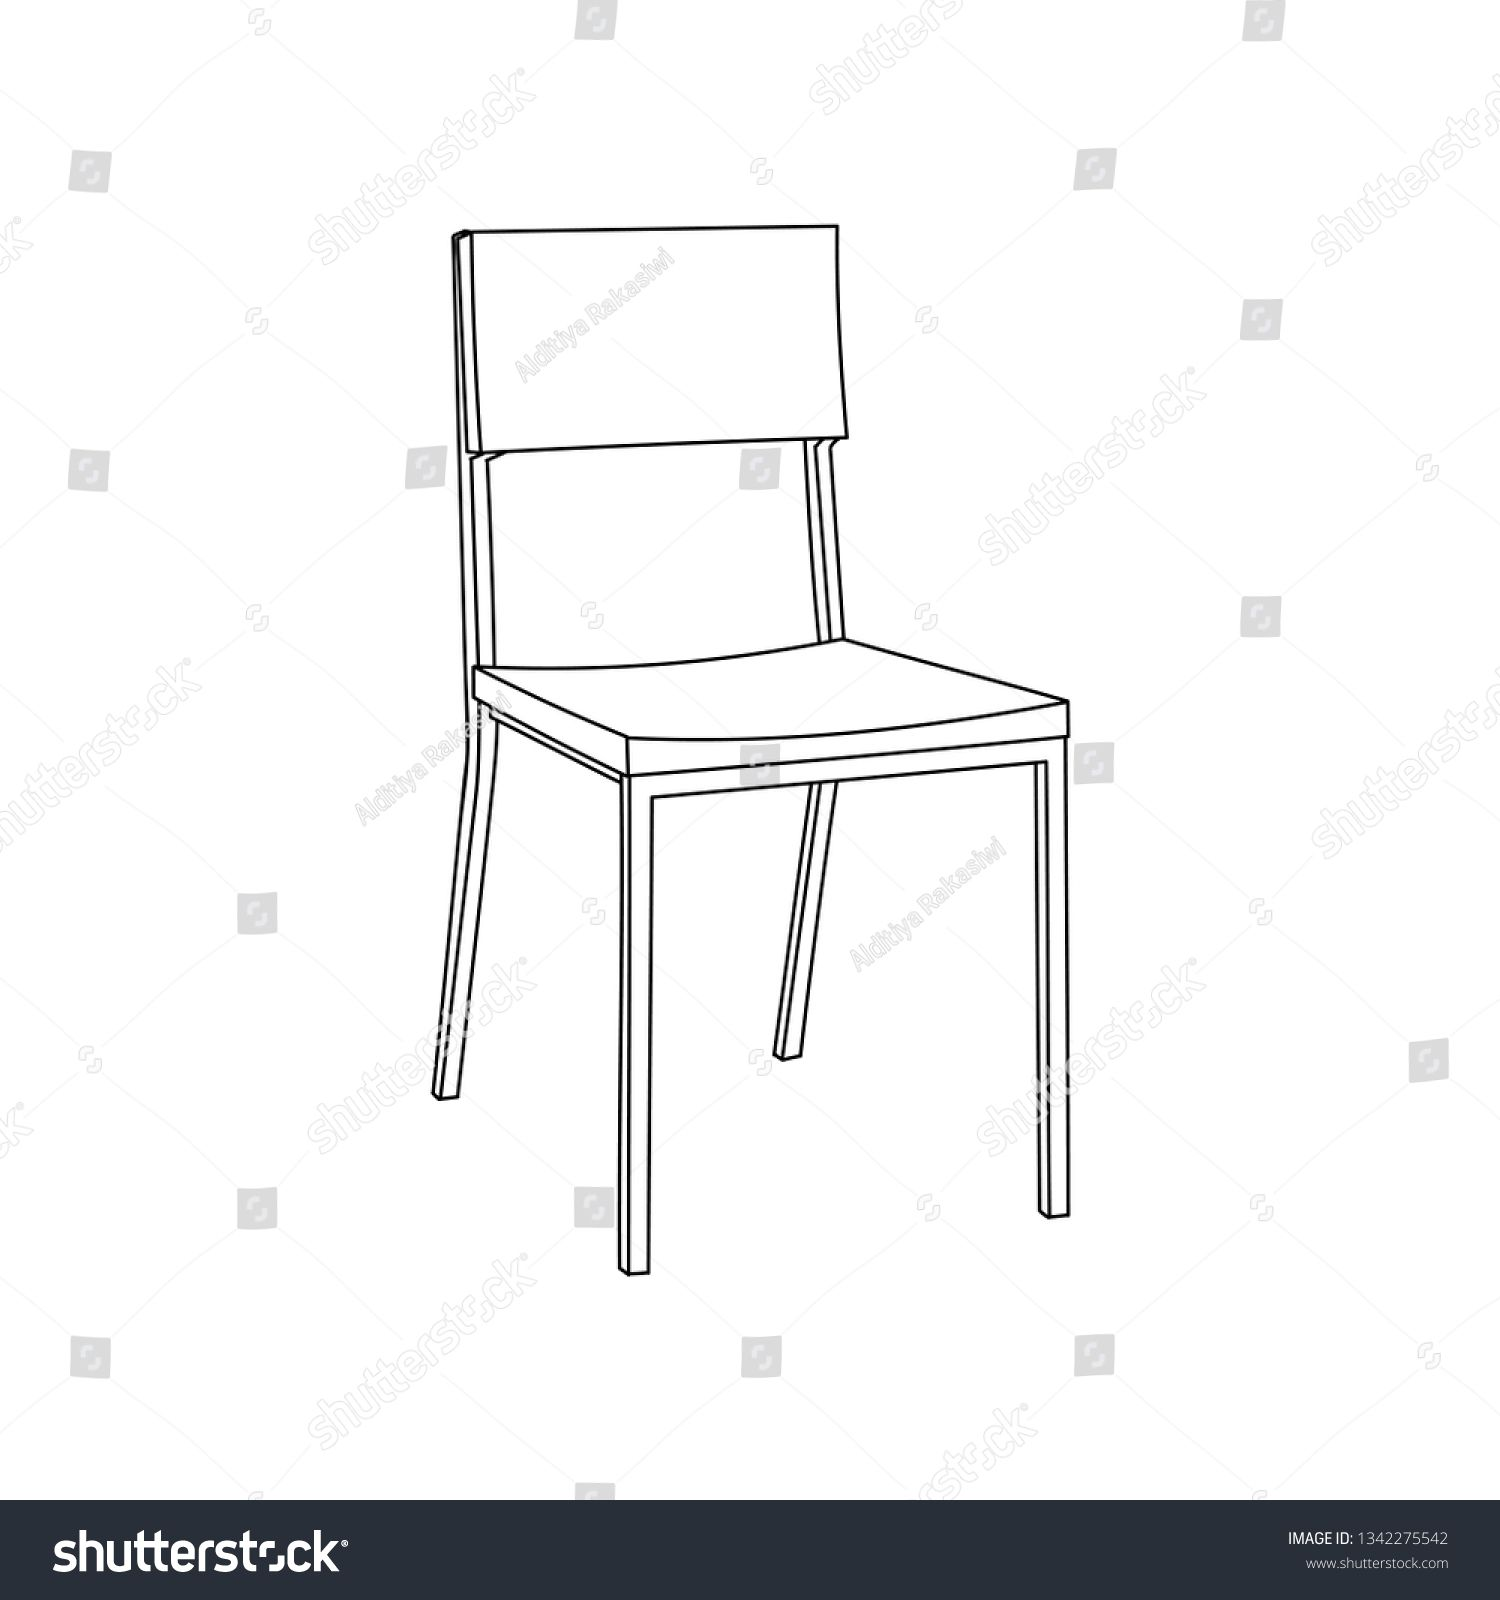 Dining Chair Furniture Simple Outline Illustration Isolated Clip Art Vector Ad Ad Simple Outline Furniture Dining In 2020 Furniture Chair Chair Dining Chairs